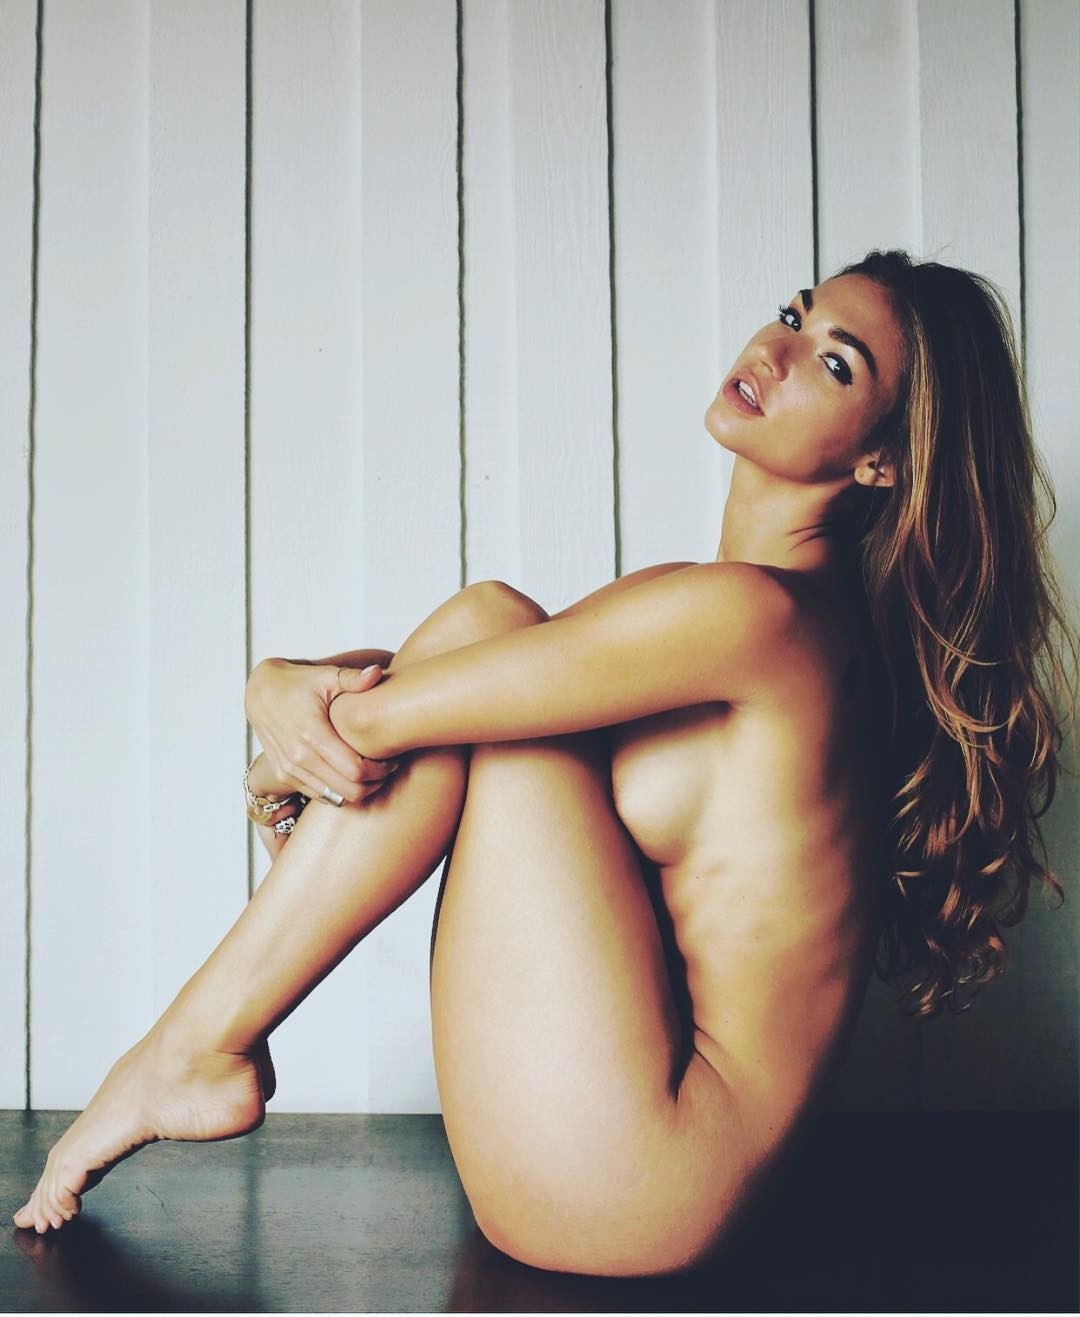 Rachel Pringle Great Nude Photos, Fit Body